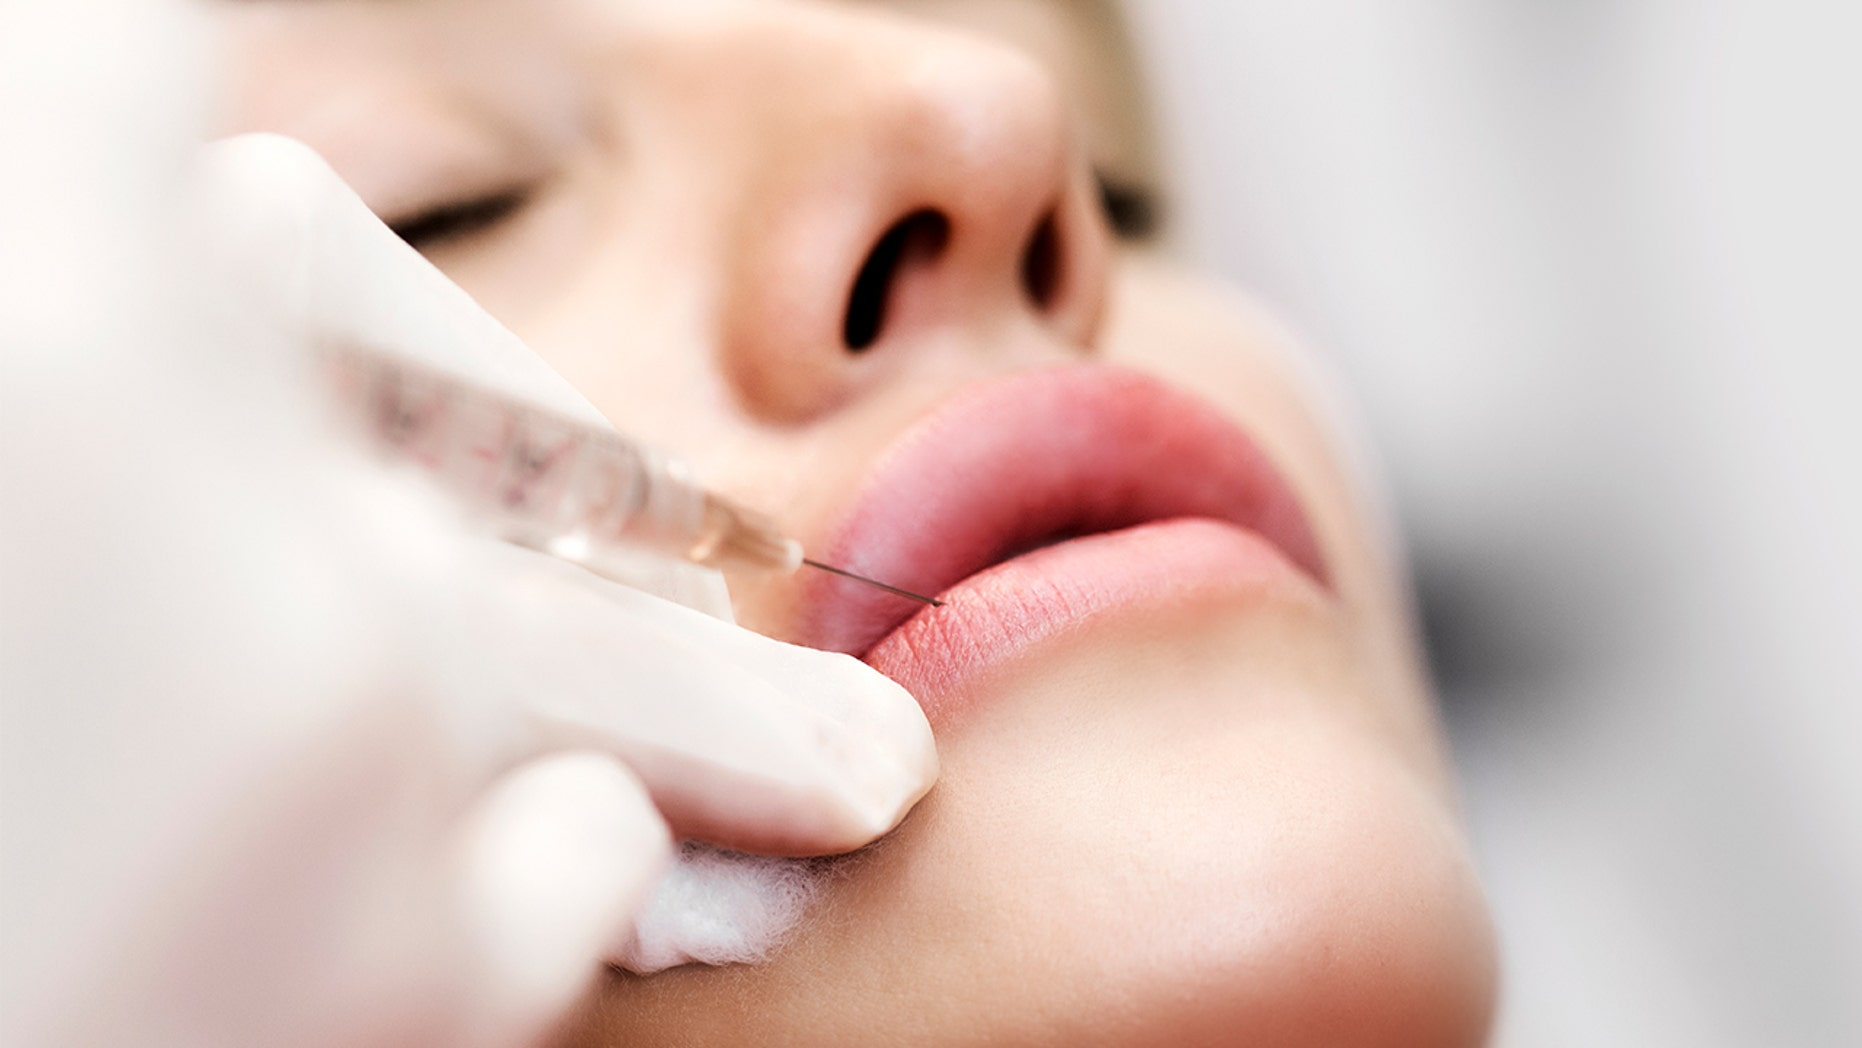 Want a plumper pout? A top NYC doctor shares everything you need to know before getting lip fillers.